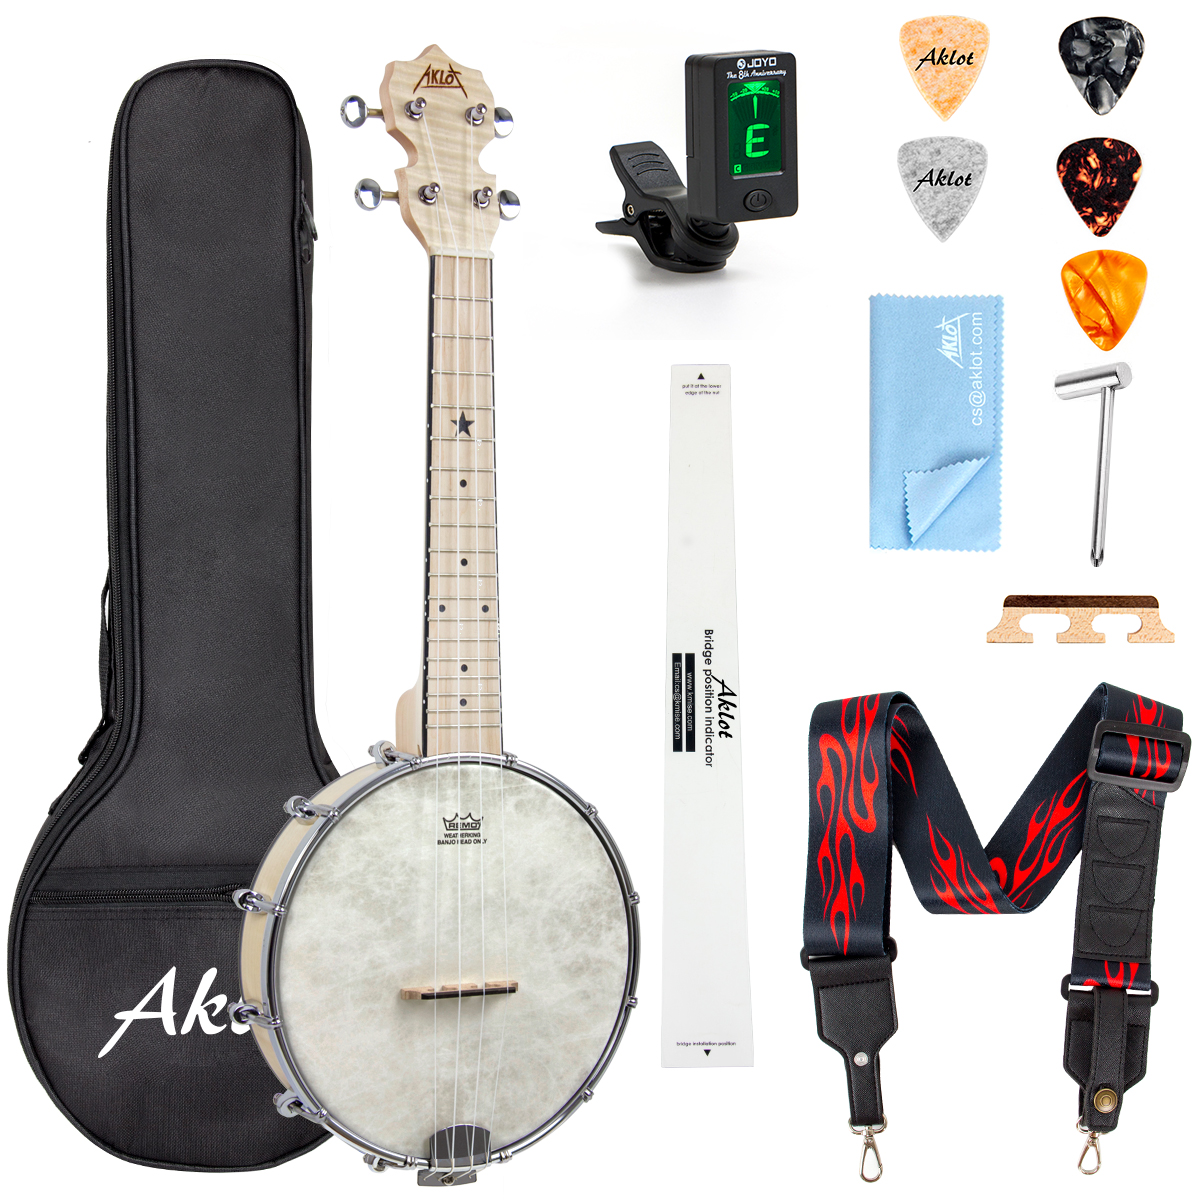 AKLOT Banjo Ukulele Concert 23 inch Remo Drumhead Open Back Maple Body 1:18 Advanced Tuner with Tow Way Truss Rod Gig Ba